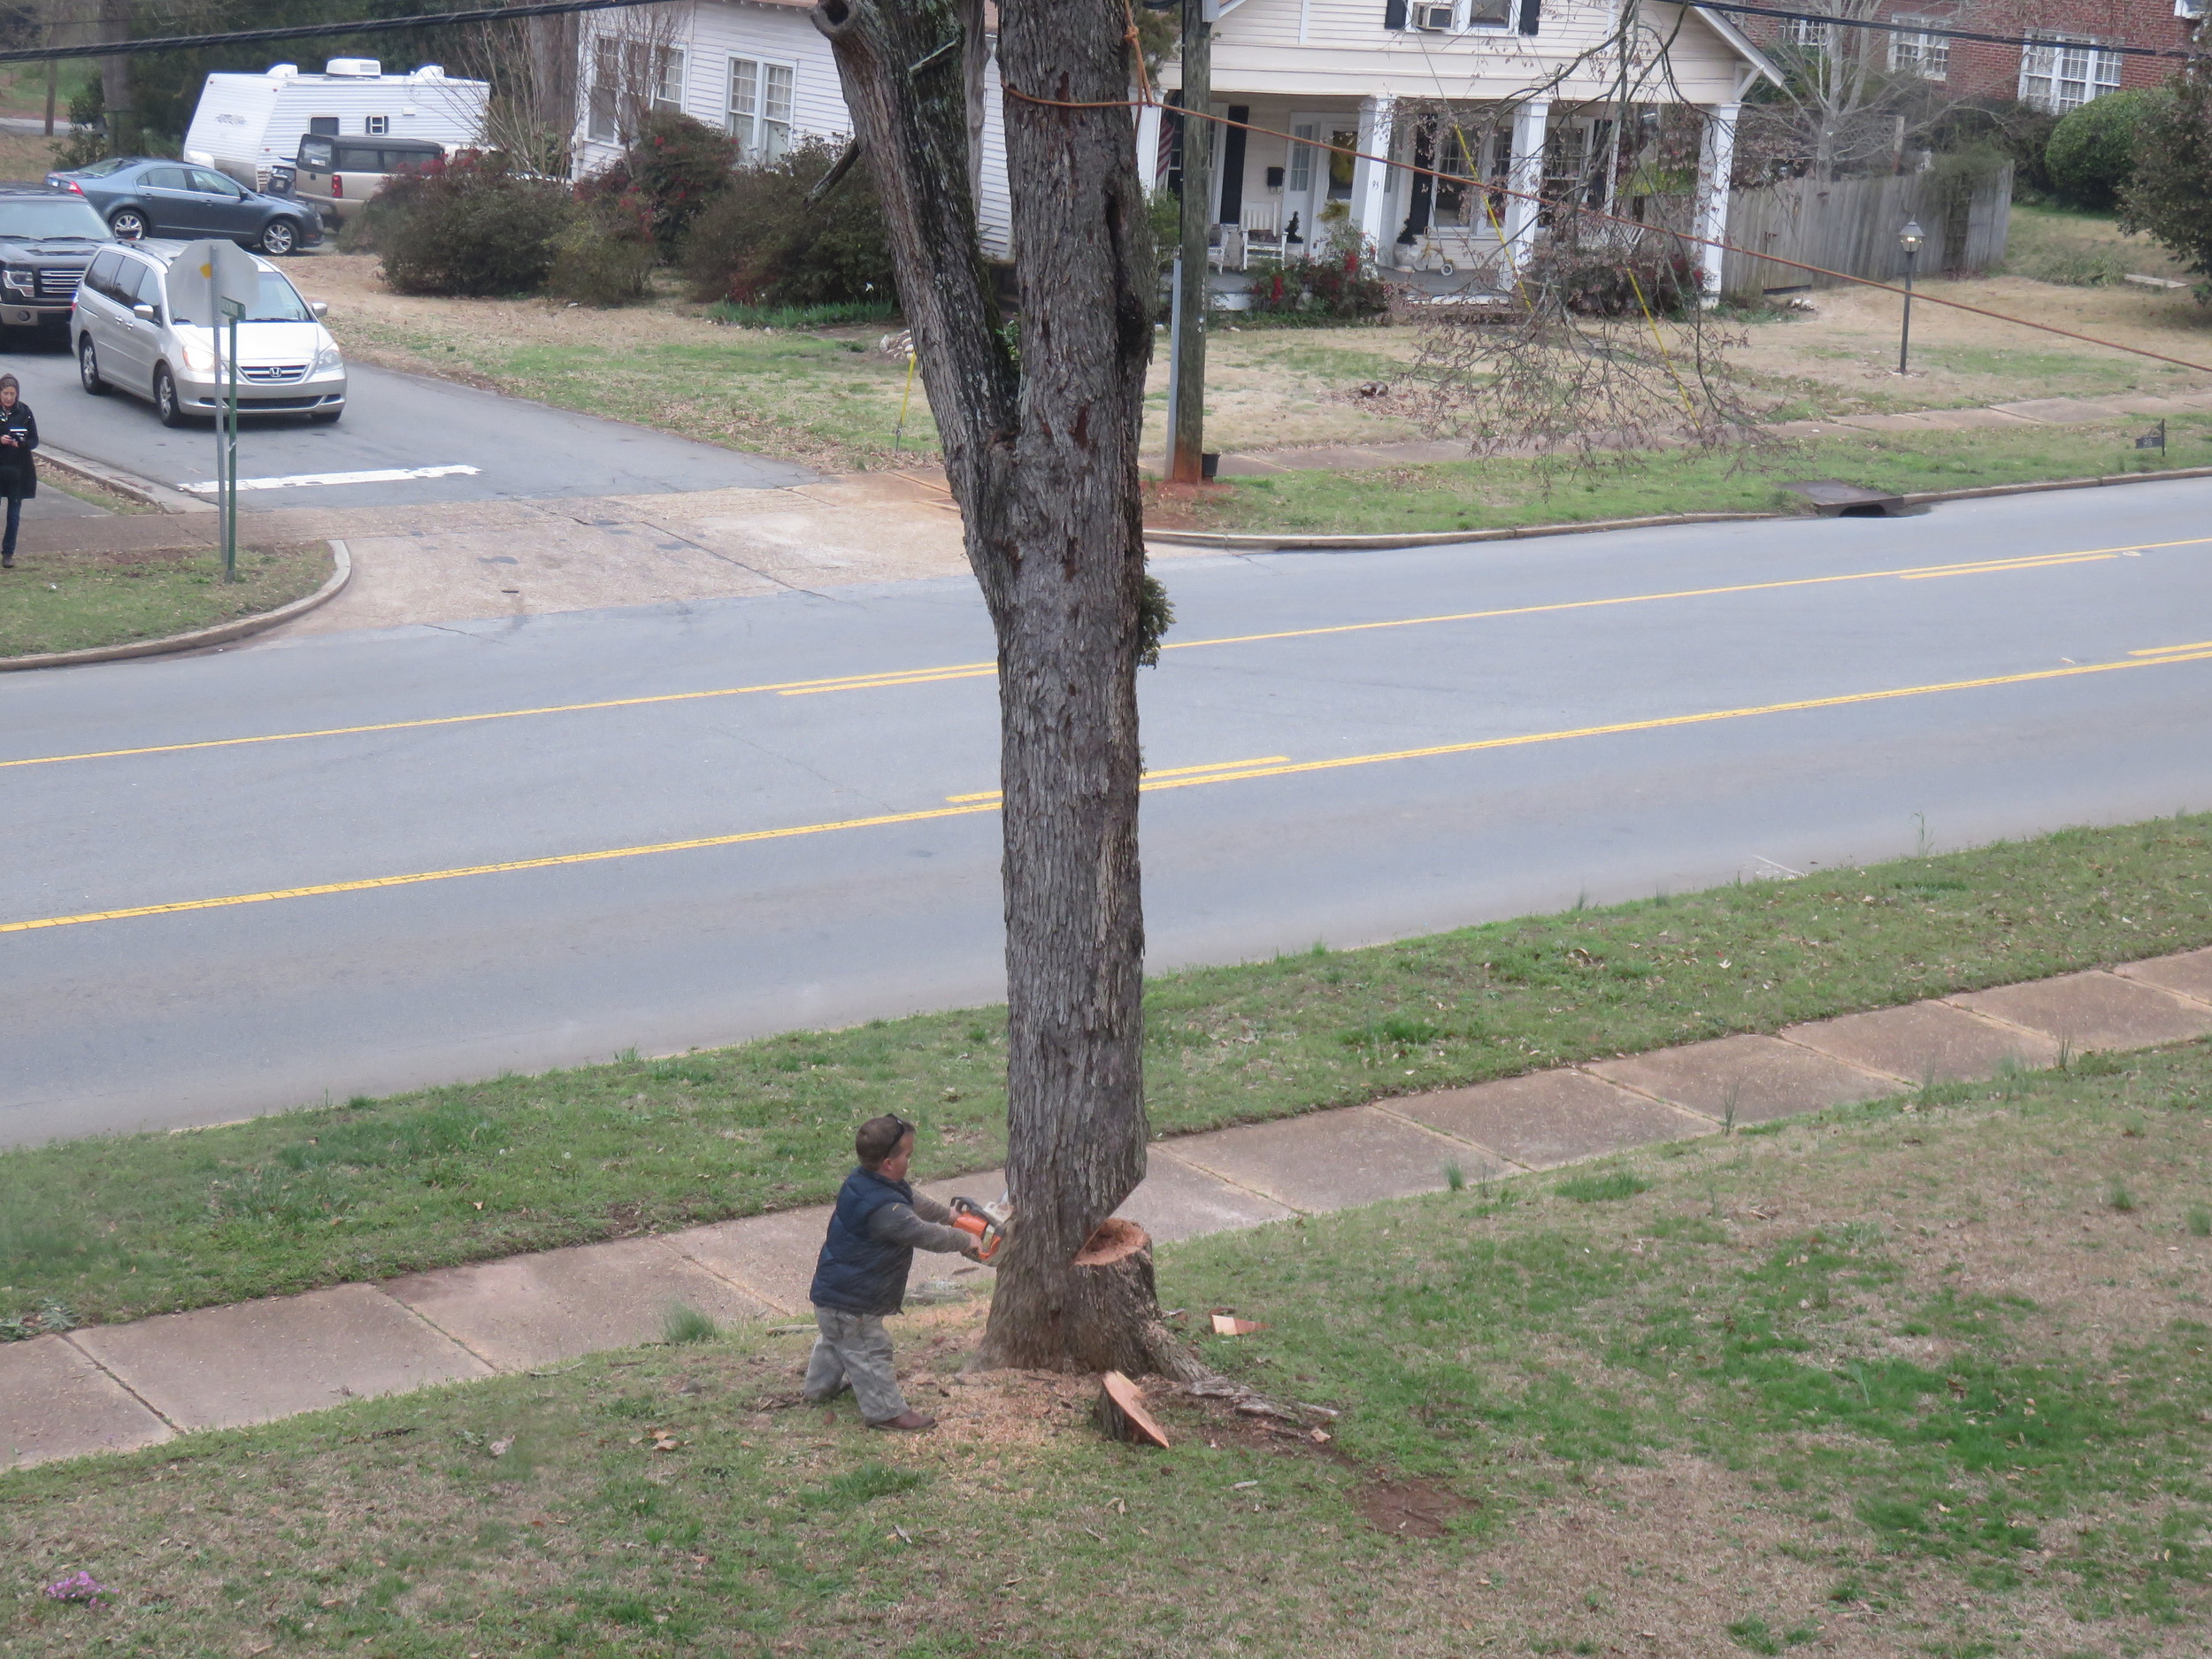 Trent attempting to cut down a tree